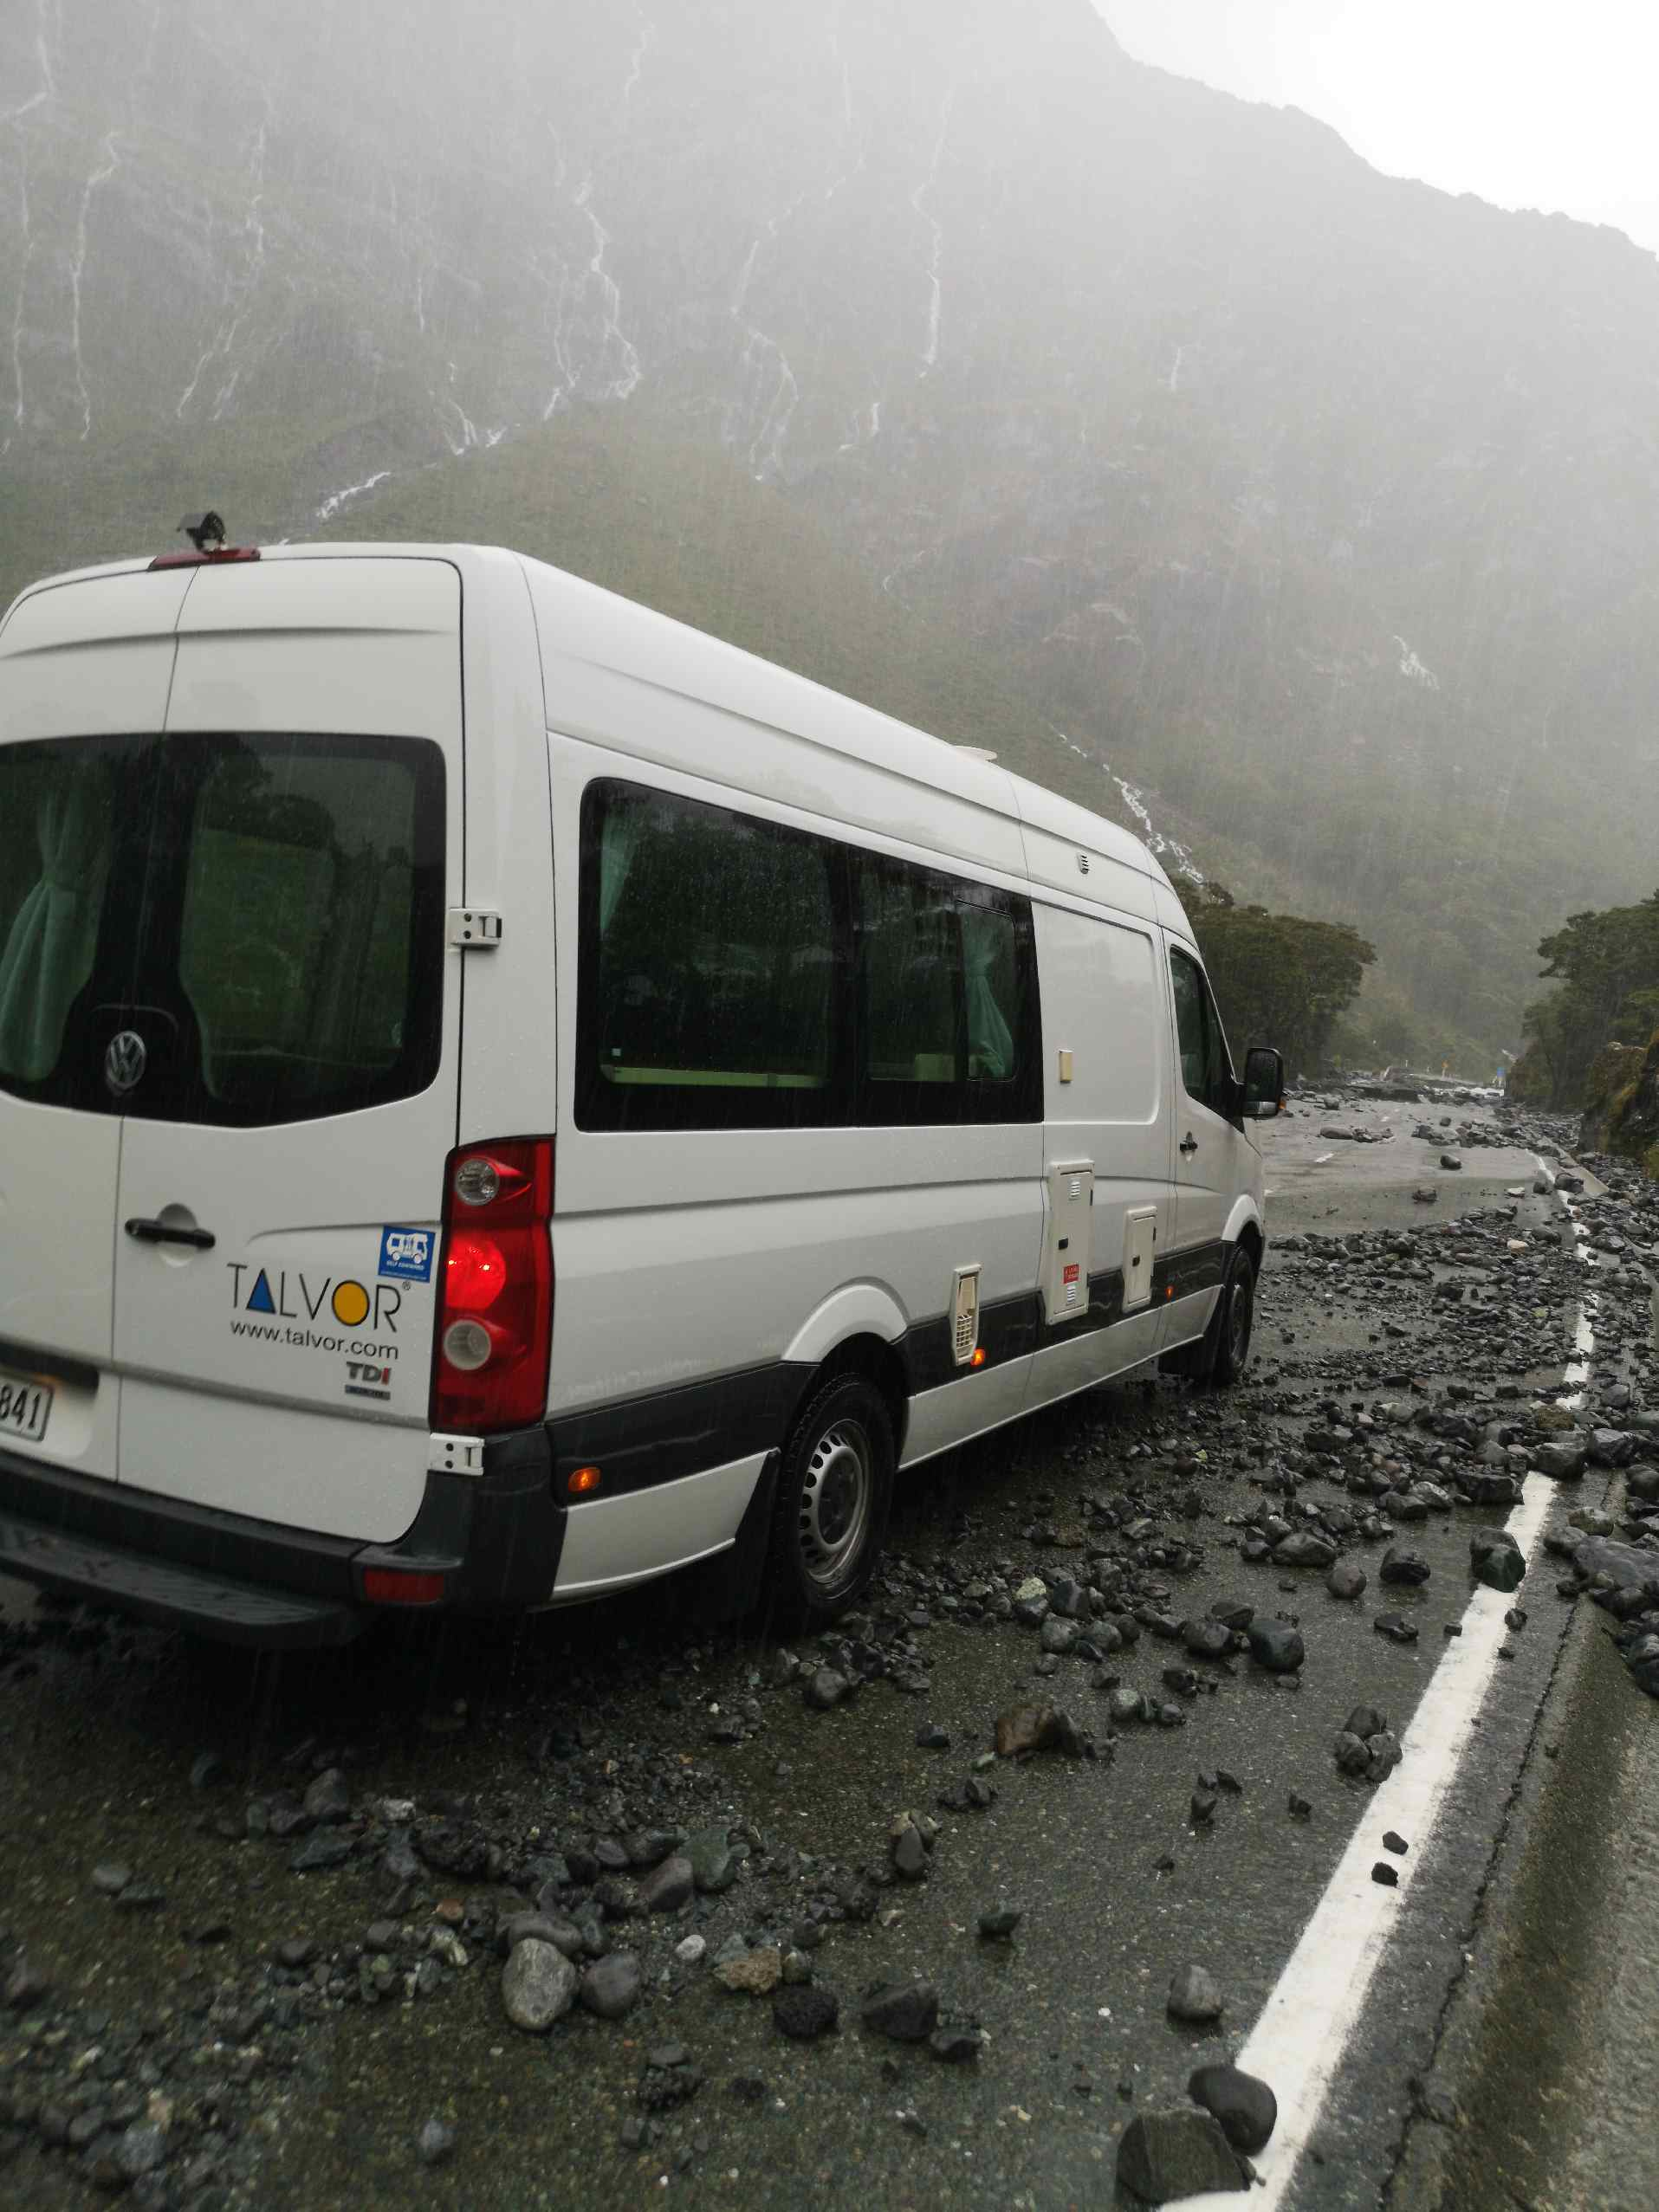 A couple from Germany were stranded in their caravan on their way from Cascade Creek to Milford...